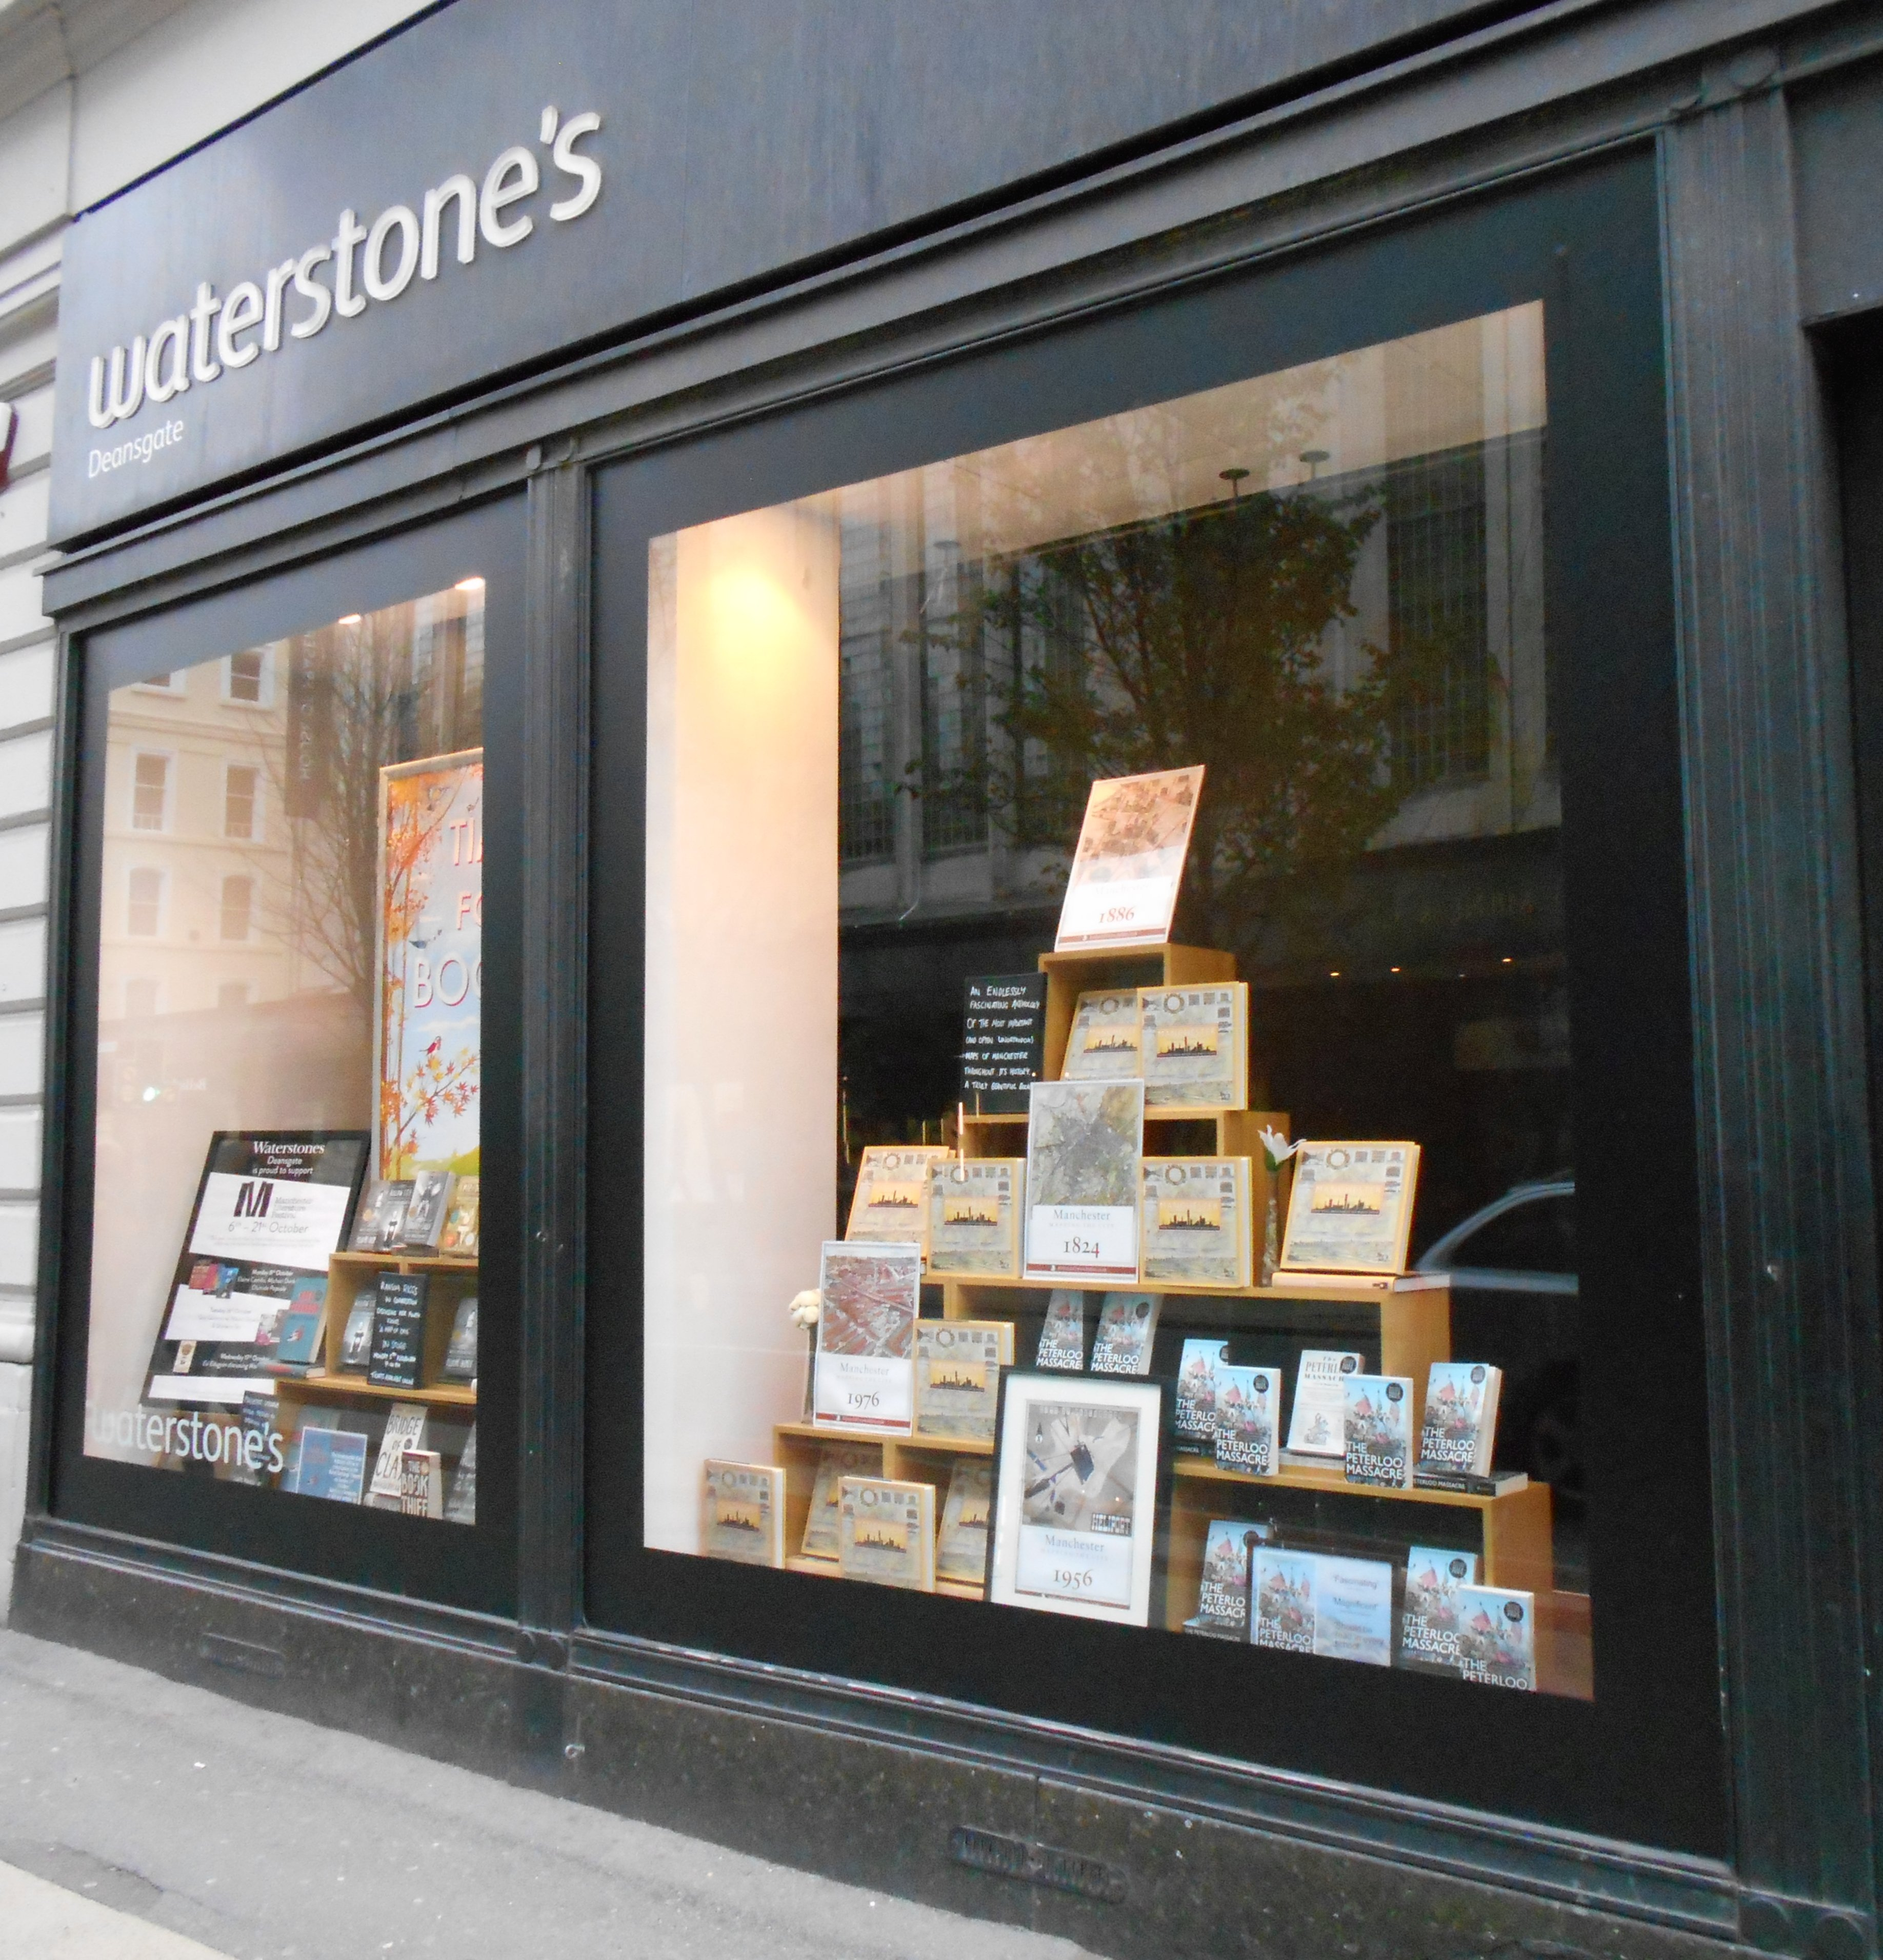 Waterstones window display